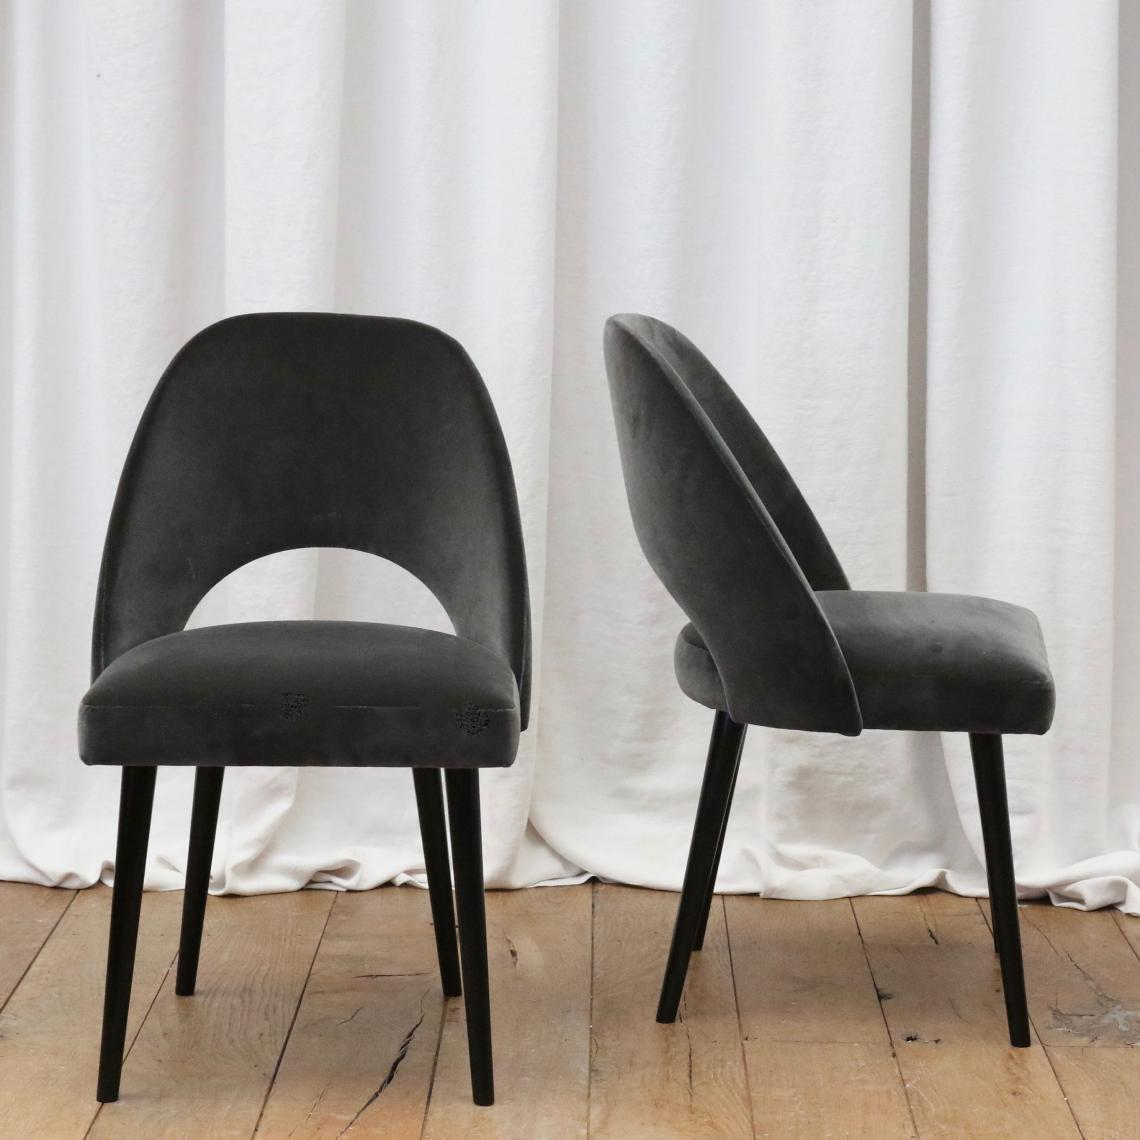 111-59 - Scala Dining Chair